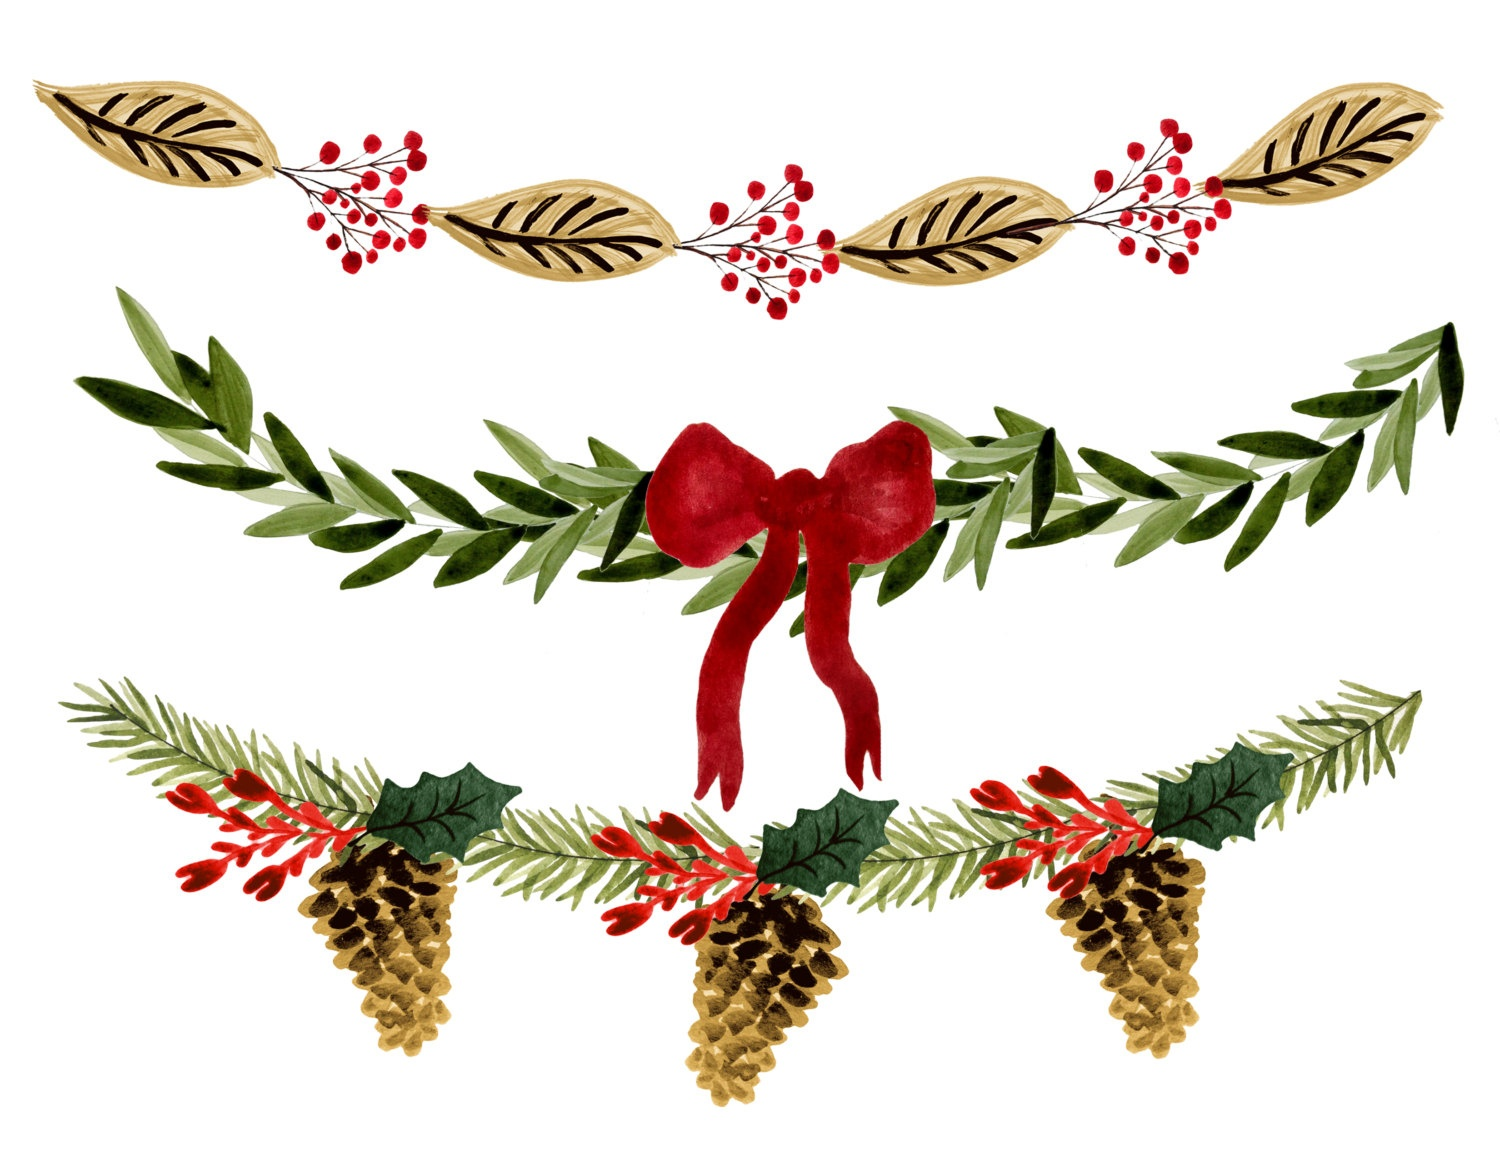 Holiday Garland Clipart | Free Download Best Holiday Garland Clipart - Christmas Garland Free Printable